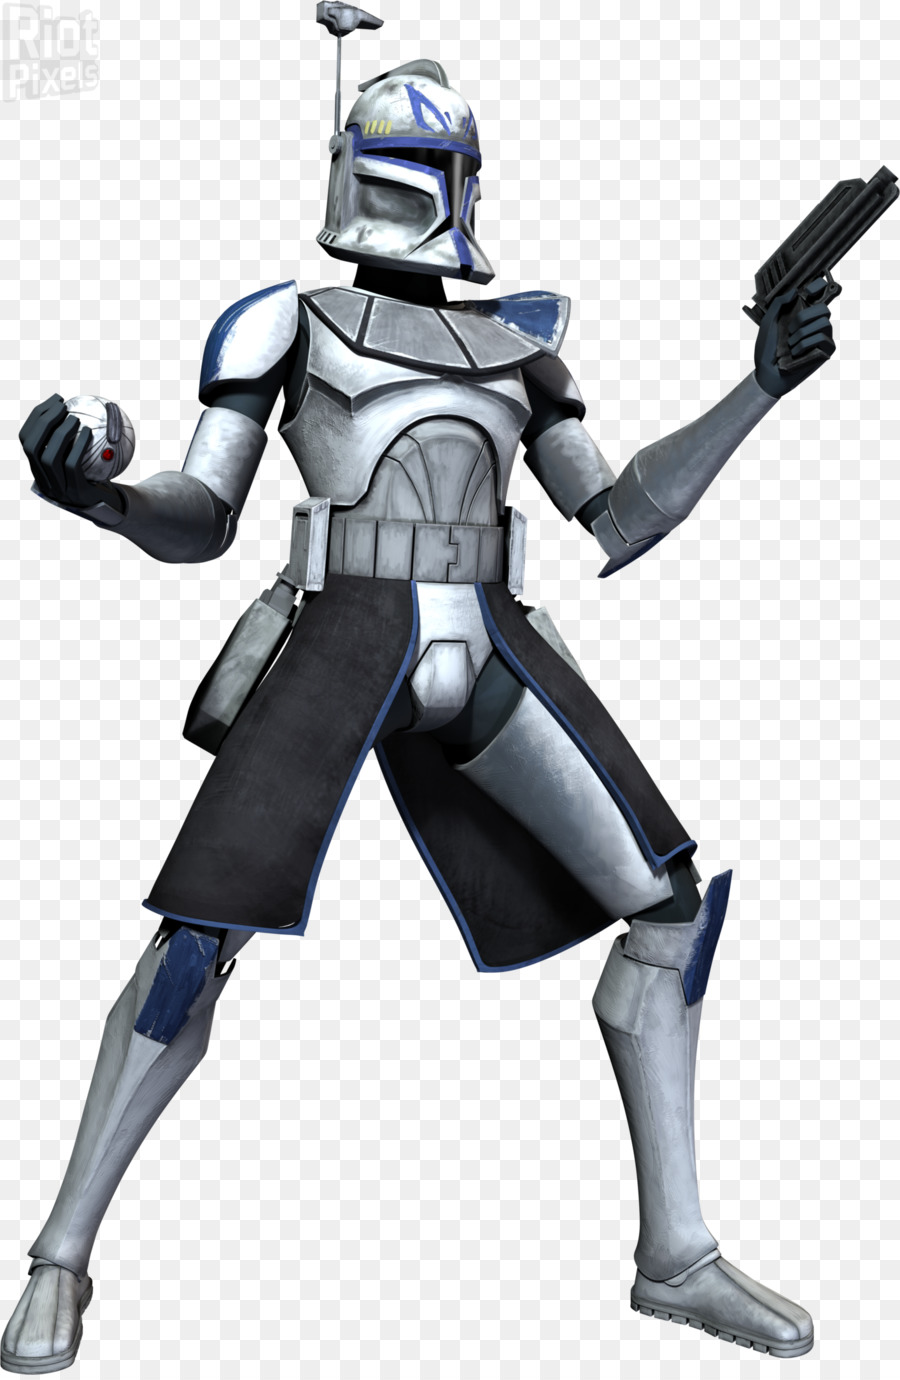 Clone Trooper Star Wars: The Clone Wars R2 D2 Obi Wan Kenobi   Star War